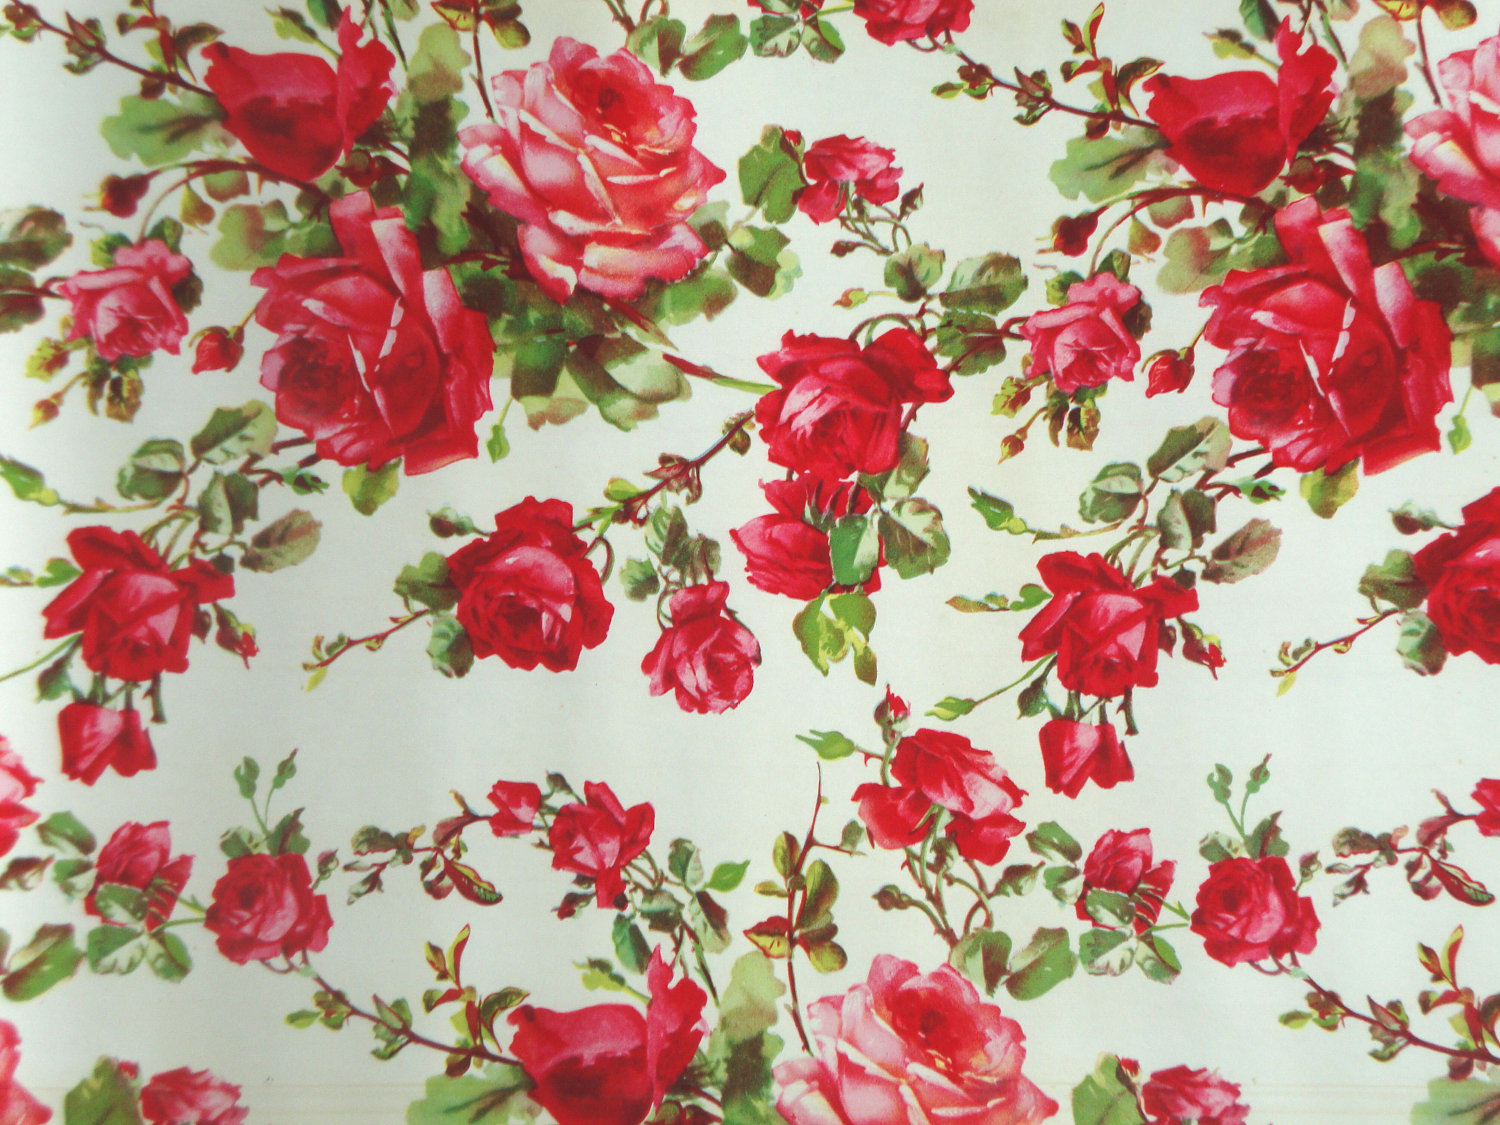 knumathise: Red Roses Tumblr Vintage Images